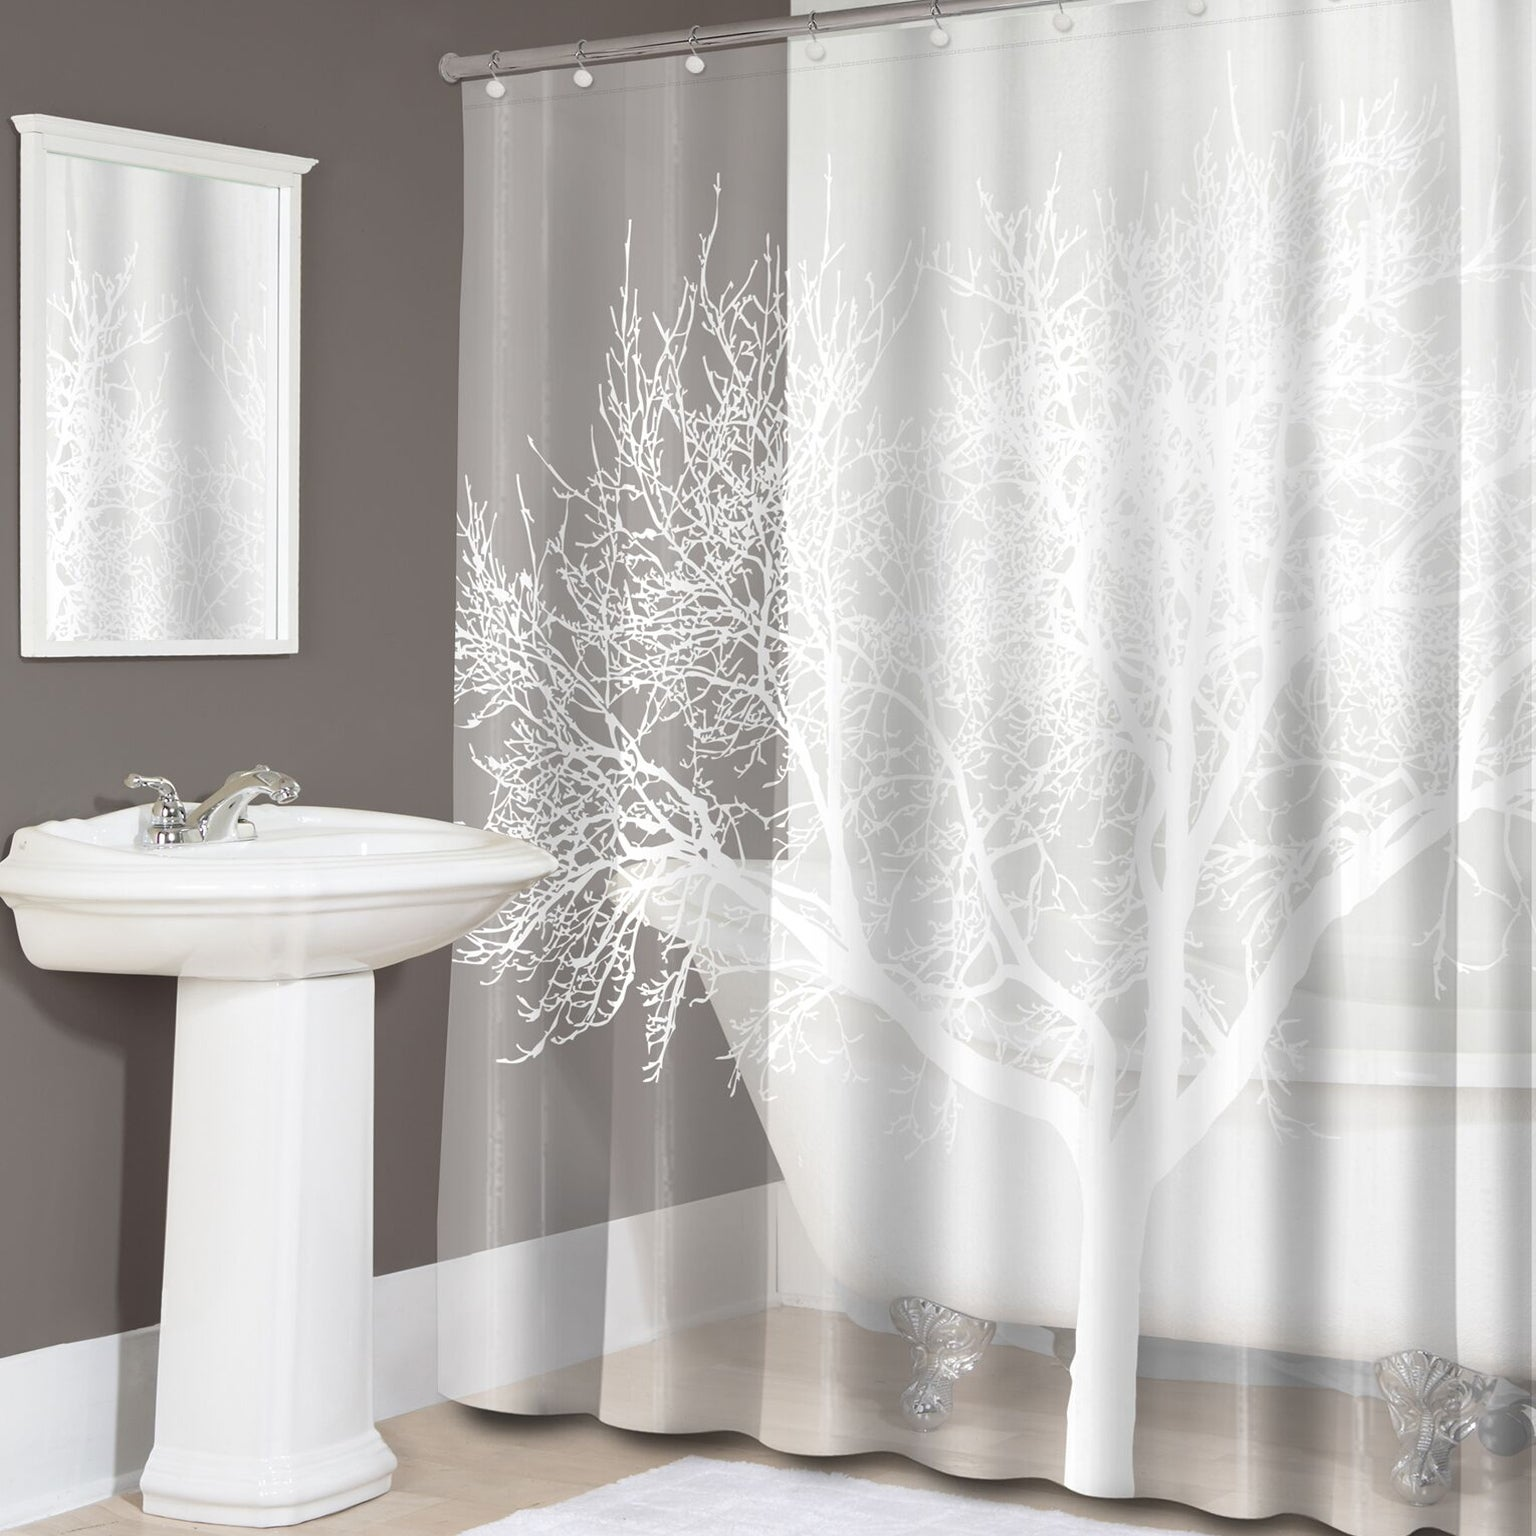 Delicieux Pearl Tree Print PEVA Shower Curtain   Free Shipping On Orders Over $45    Overstock   22553916